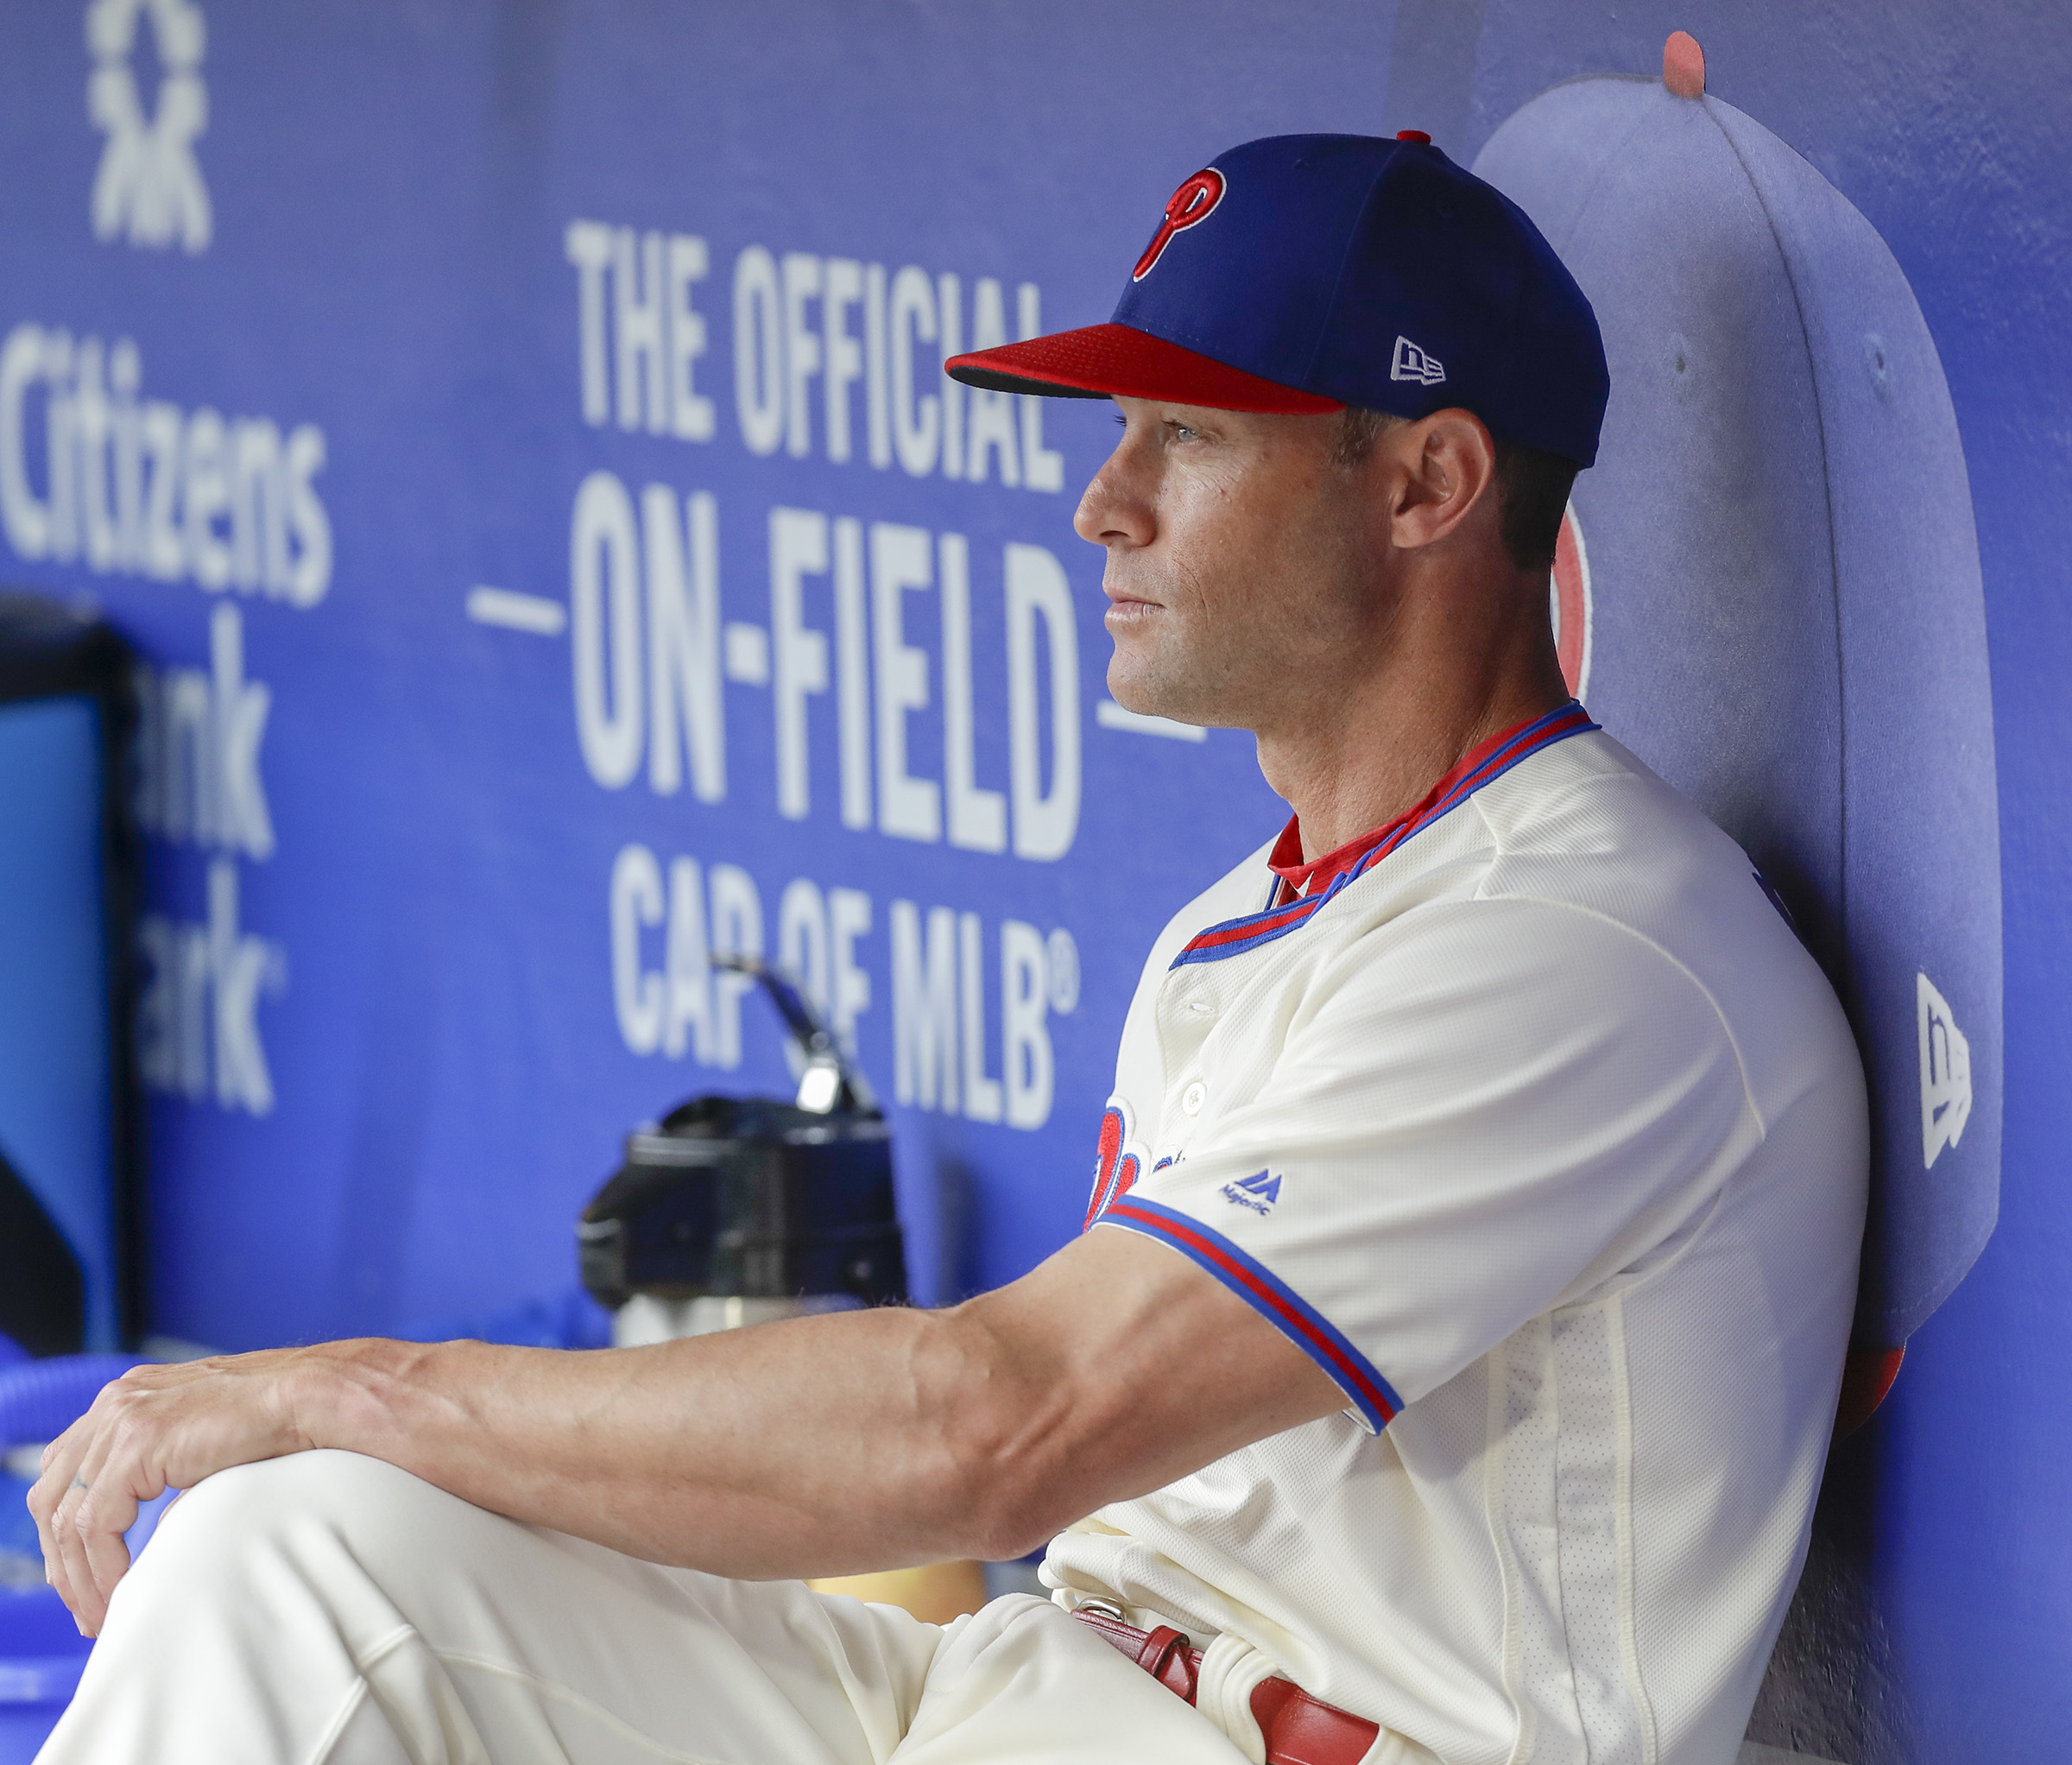 Phillies manager Gabe Kapler believes his team will recover from a recent stretch during which the team hit only .212 with a .286 on-base percentage.